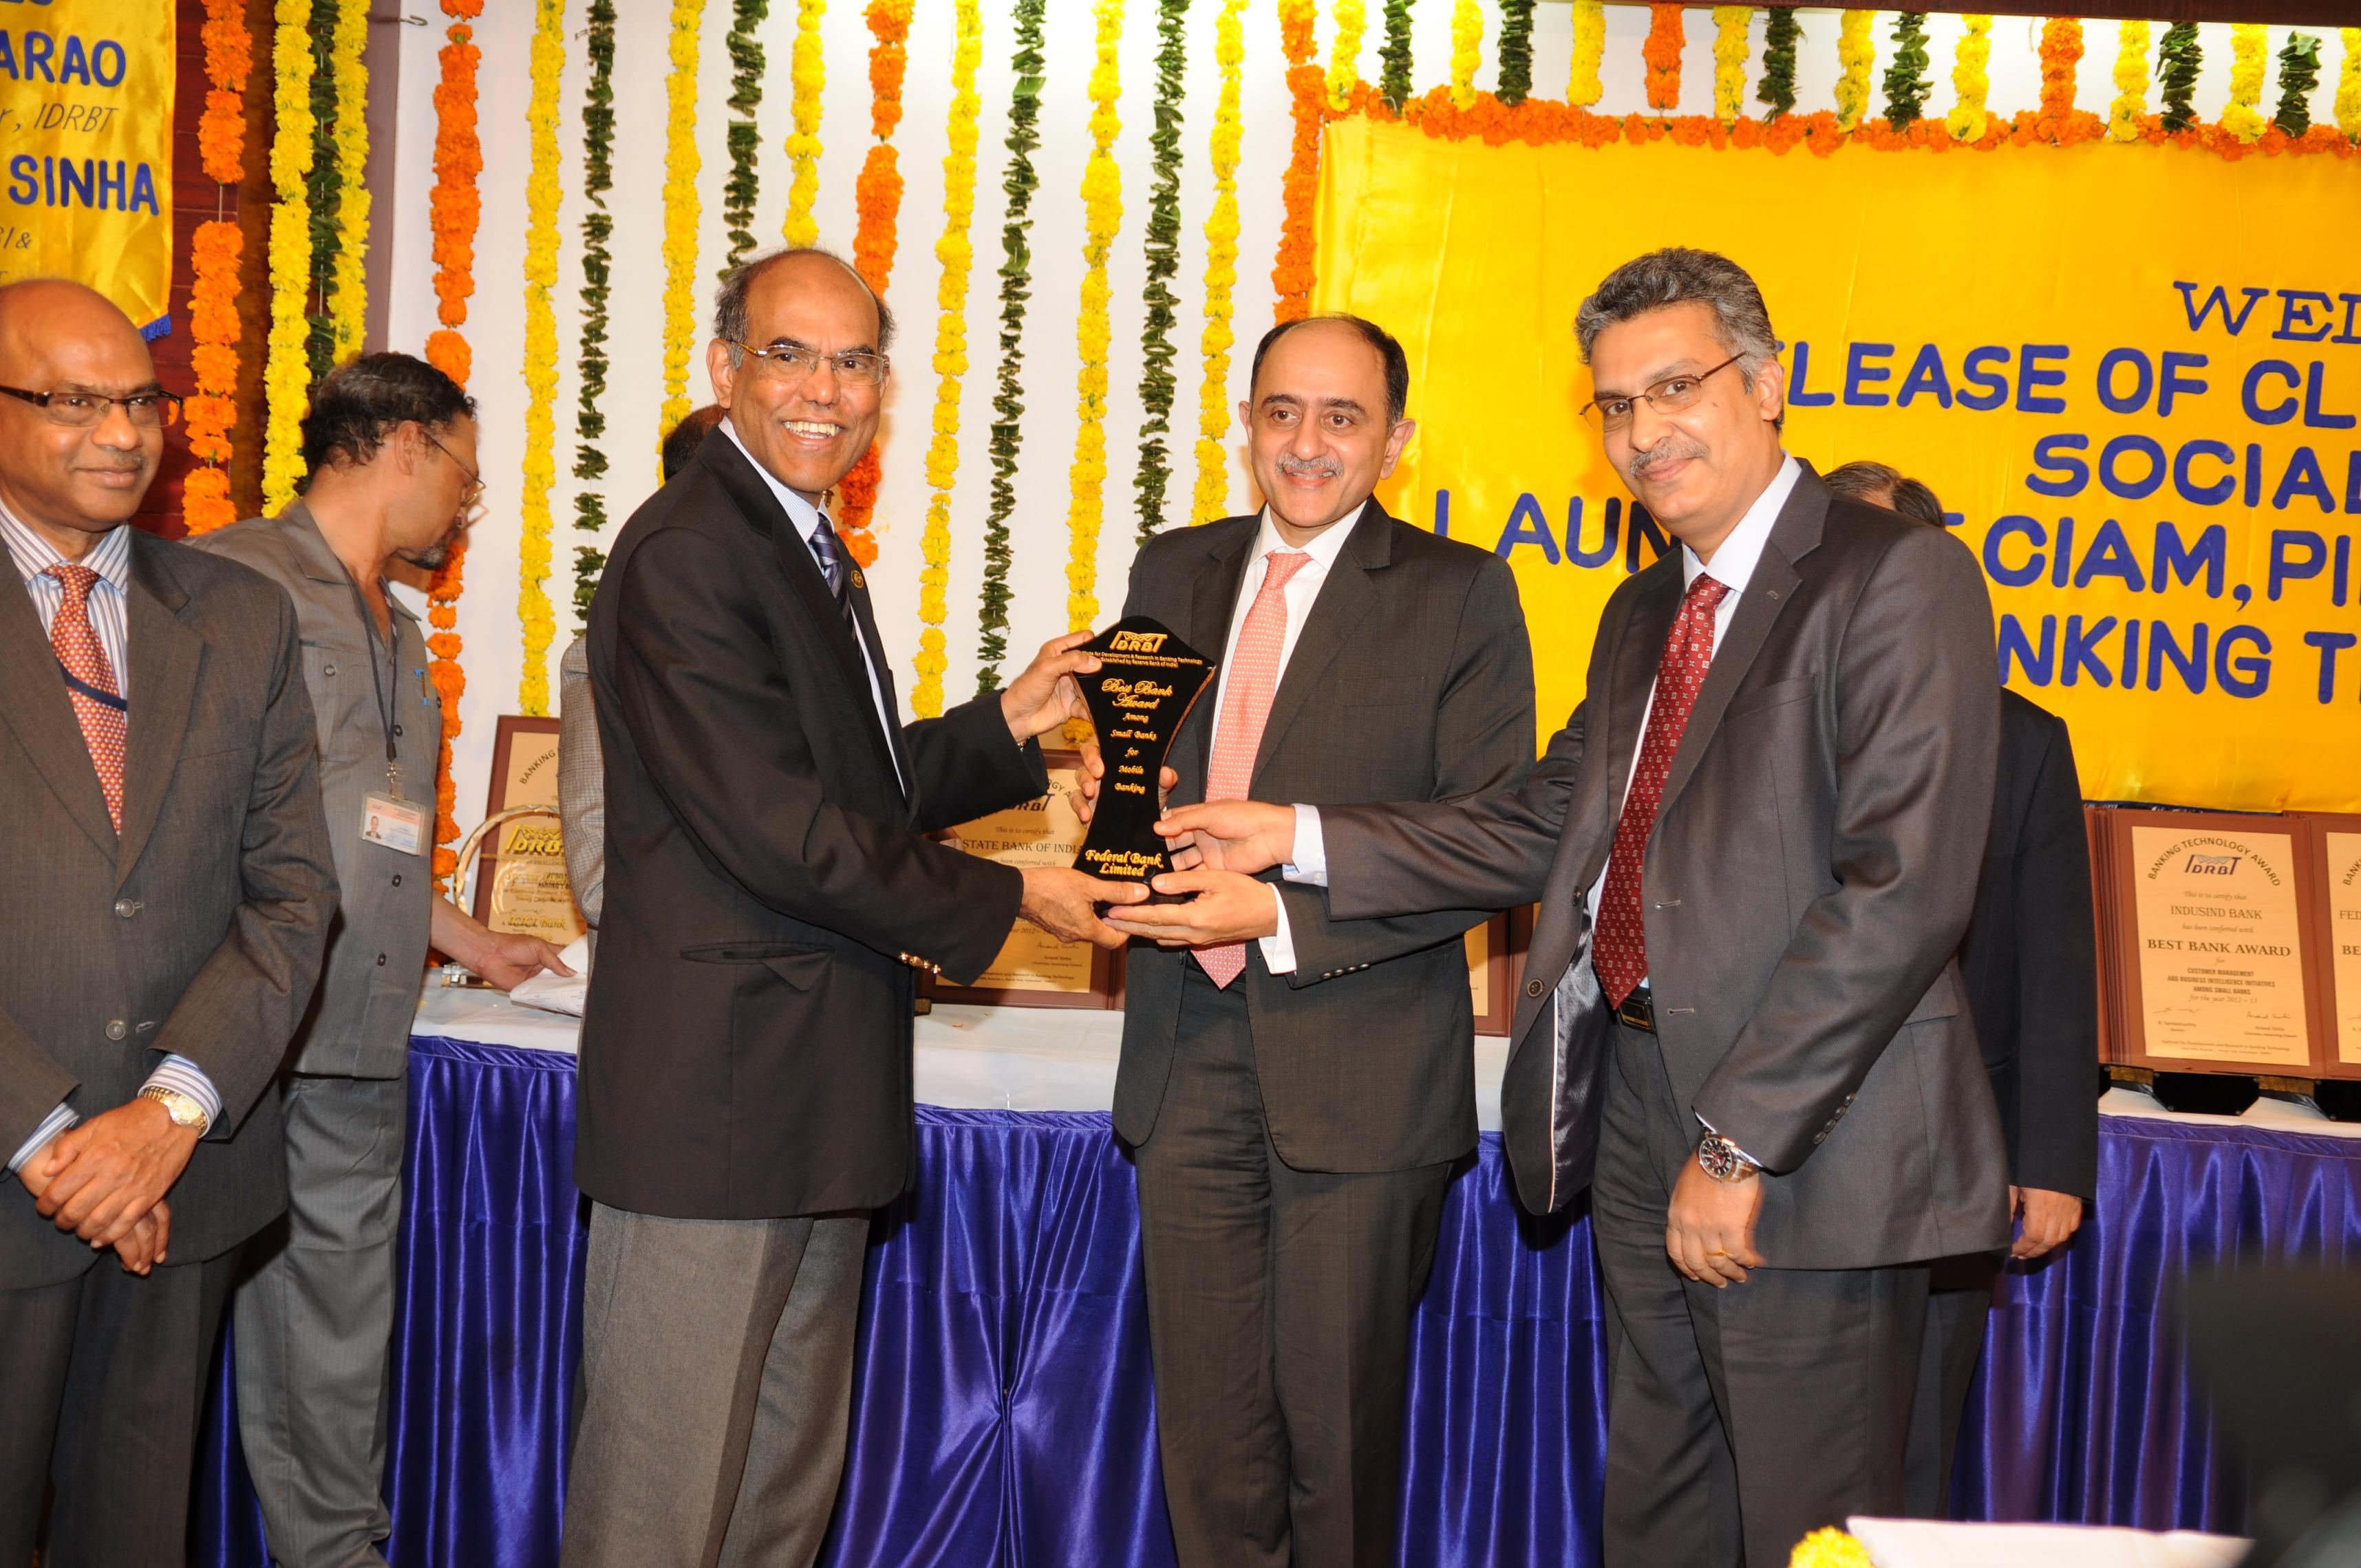 IDRBT Awards for Excellence in Banking Technology 2012-13 - Federal Bank won two IDRBT Awards for Excellence in Banking Technology for the year 2012-13 for Best IT Team and Best Mobile Banking in the small bank category. Seen in the picture are Shri .Shyam Srinivasan ,MD & CEO and Shri .Sunny K P,DGM and Head-IT and Operations receiving the awards at a function held at Hyderabad from the RBI Governor, Dr. D Subbarao. These twin awards are the latest of a long series of regular wins Federal Bank had at The Institute for Development & Research in Banking Technology. (IDRBT was established by the Reserve Bank of India in 1996 as an Autonomous Centre for Development and Research in Banking Technology).